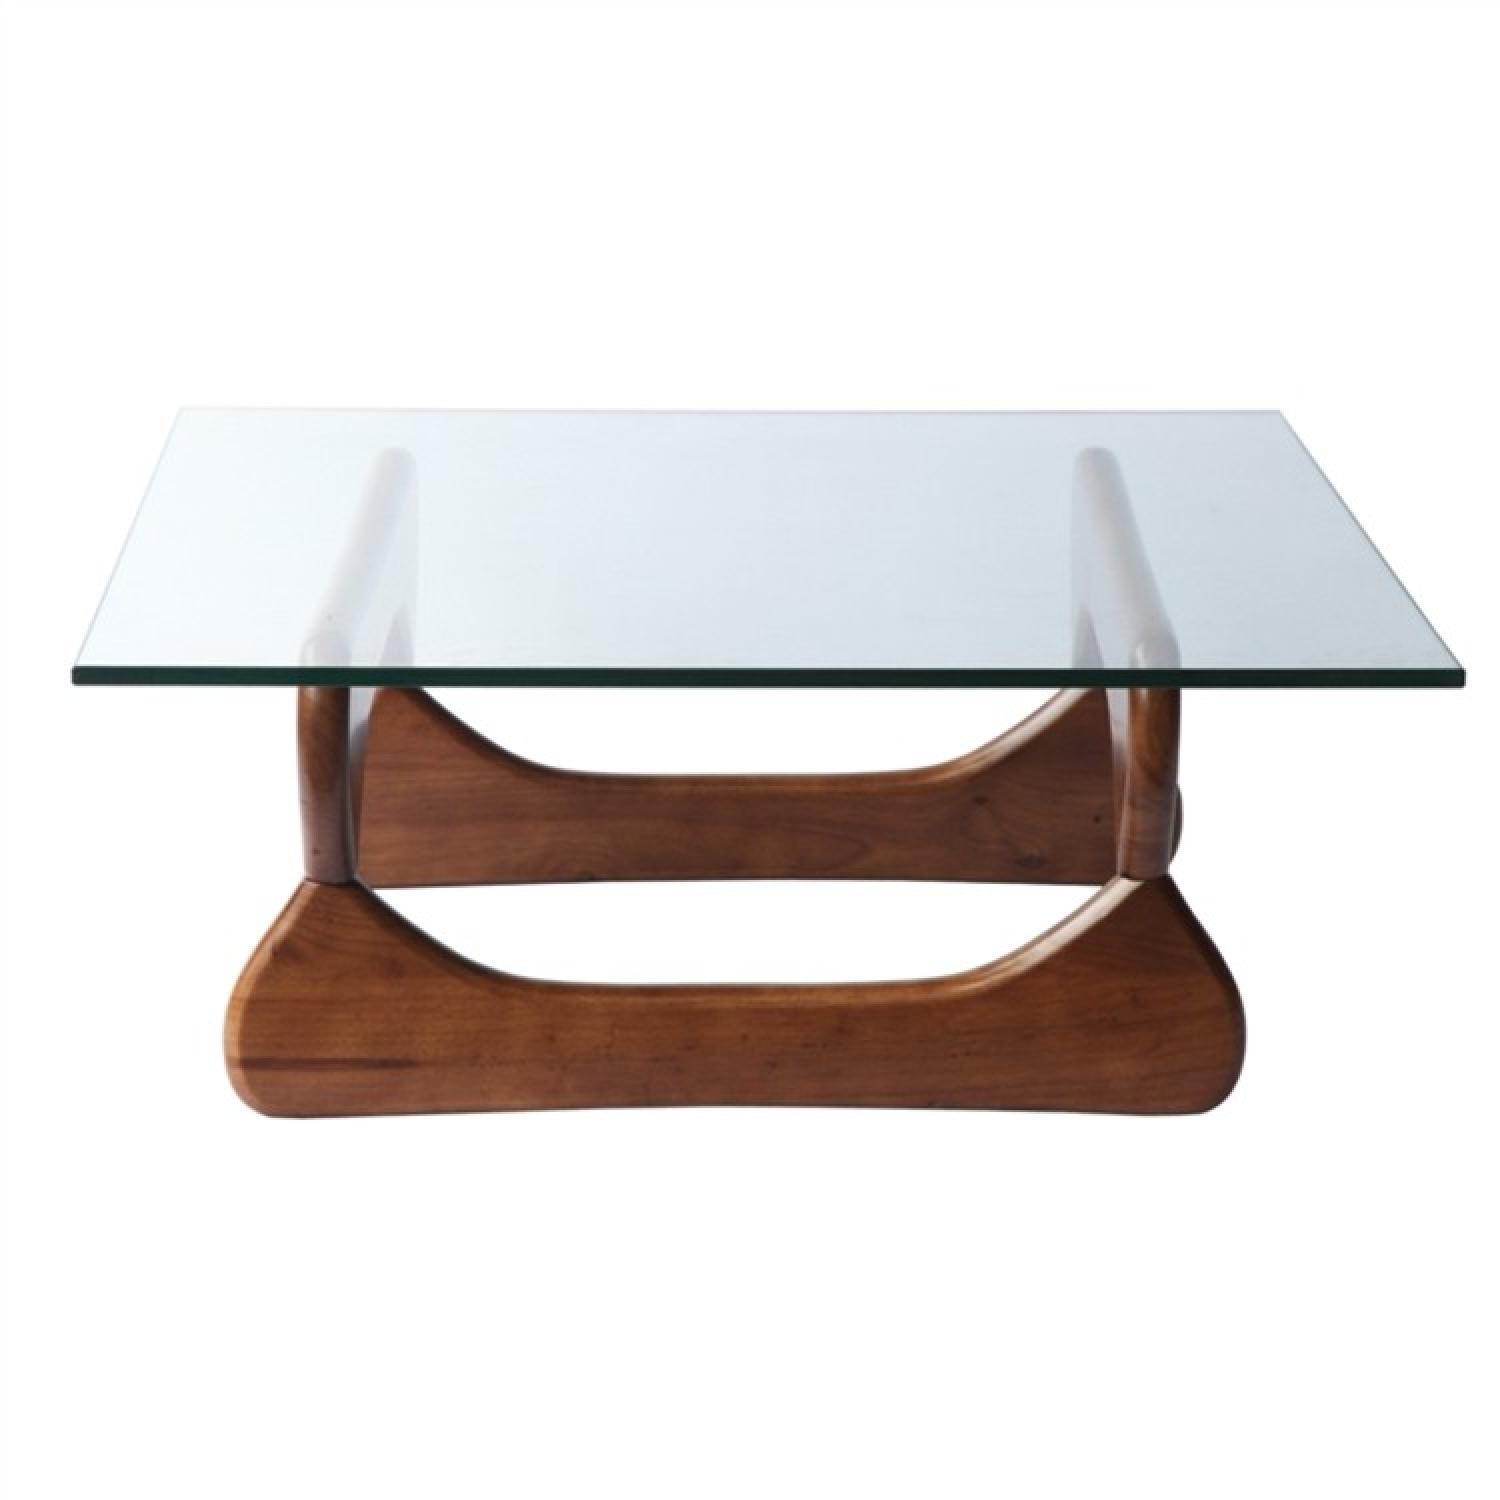 Cb2 Mid Century Coffee Table: Mid Century Inspired Coffee Table W/ Tempered Glass Top